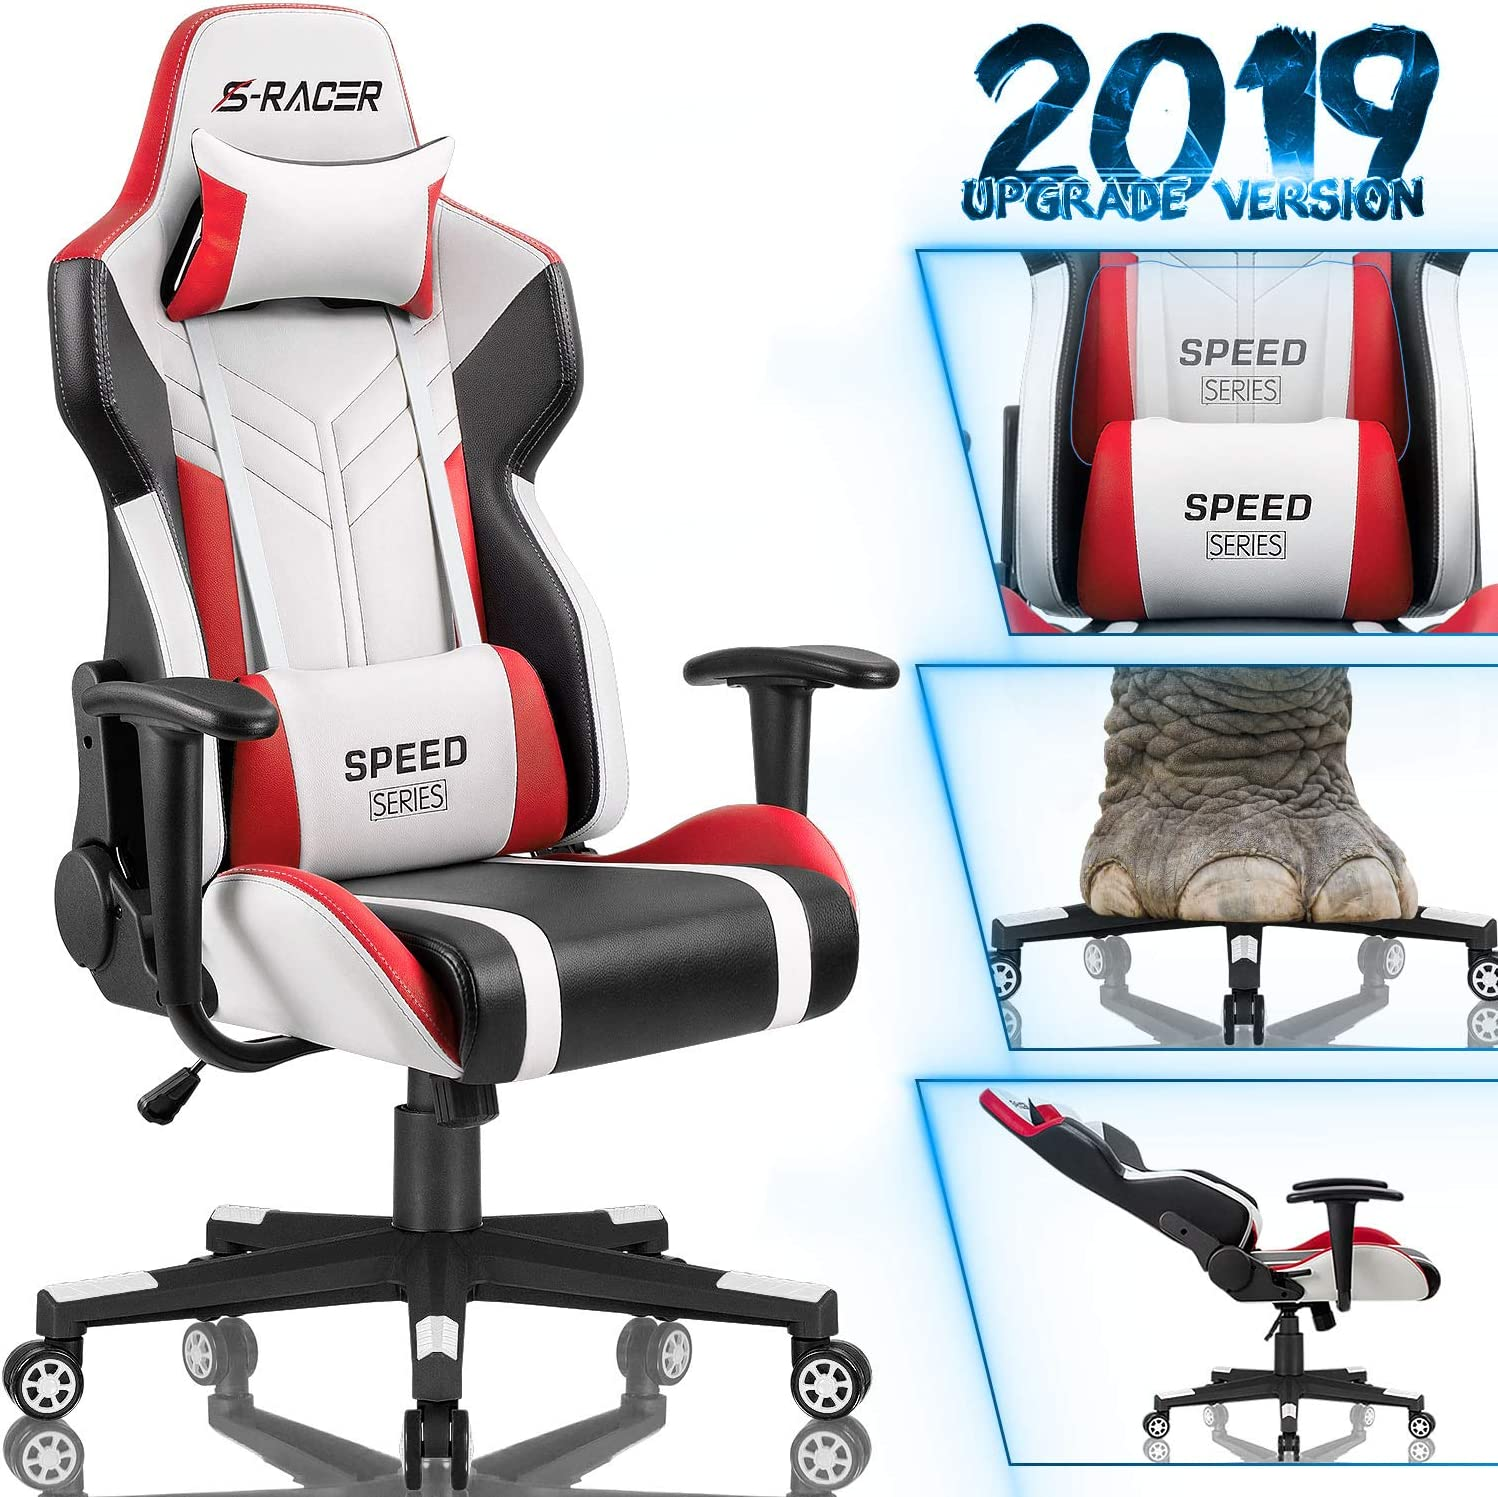 Homall Gaming Chair Racing Style High-Back PU Leather Office Chair Computer Desk Chair Executive and Ergonomic Swivel Chair with Headrest and Lumbar Support White Red